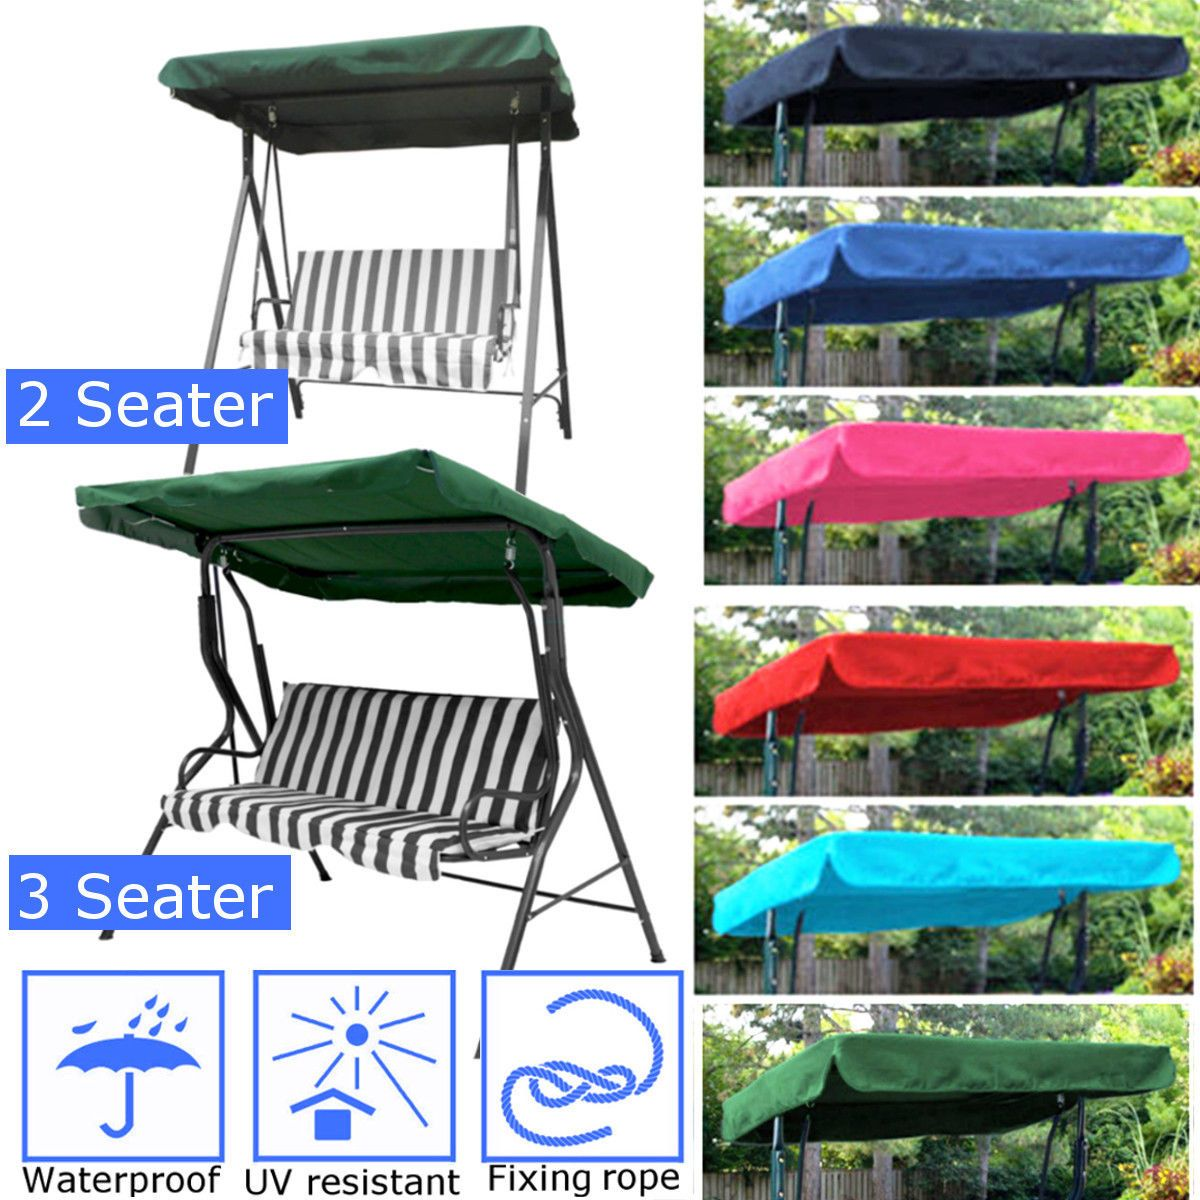 u seater sizes spare cover replacement canopy swing seat for